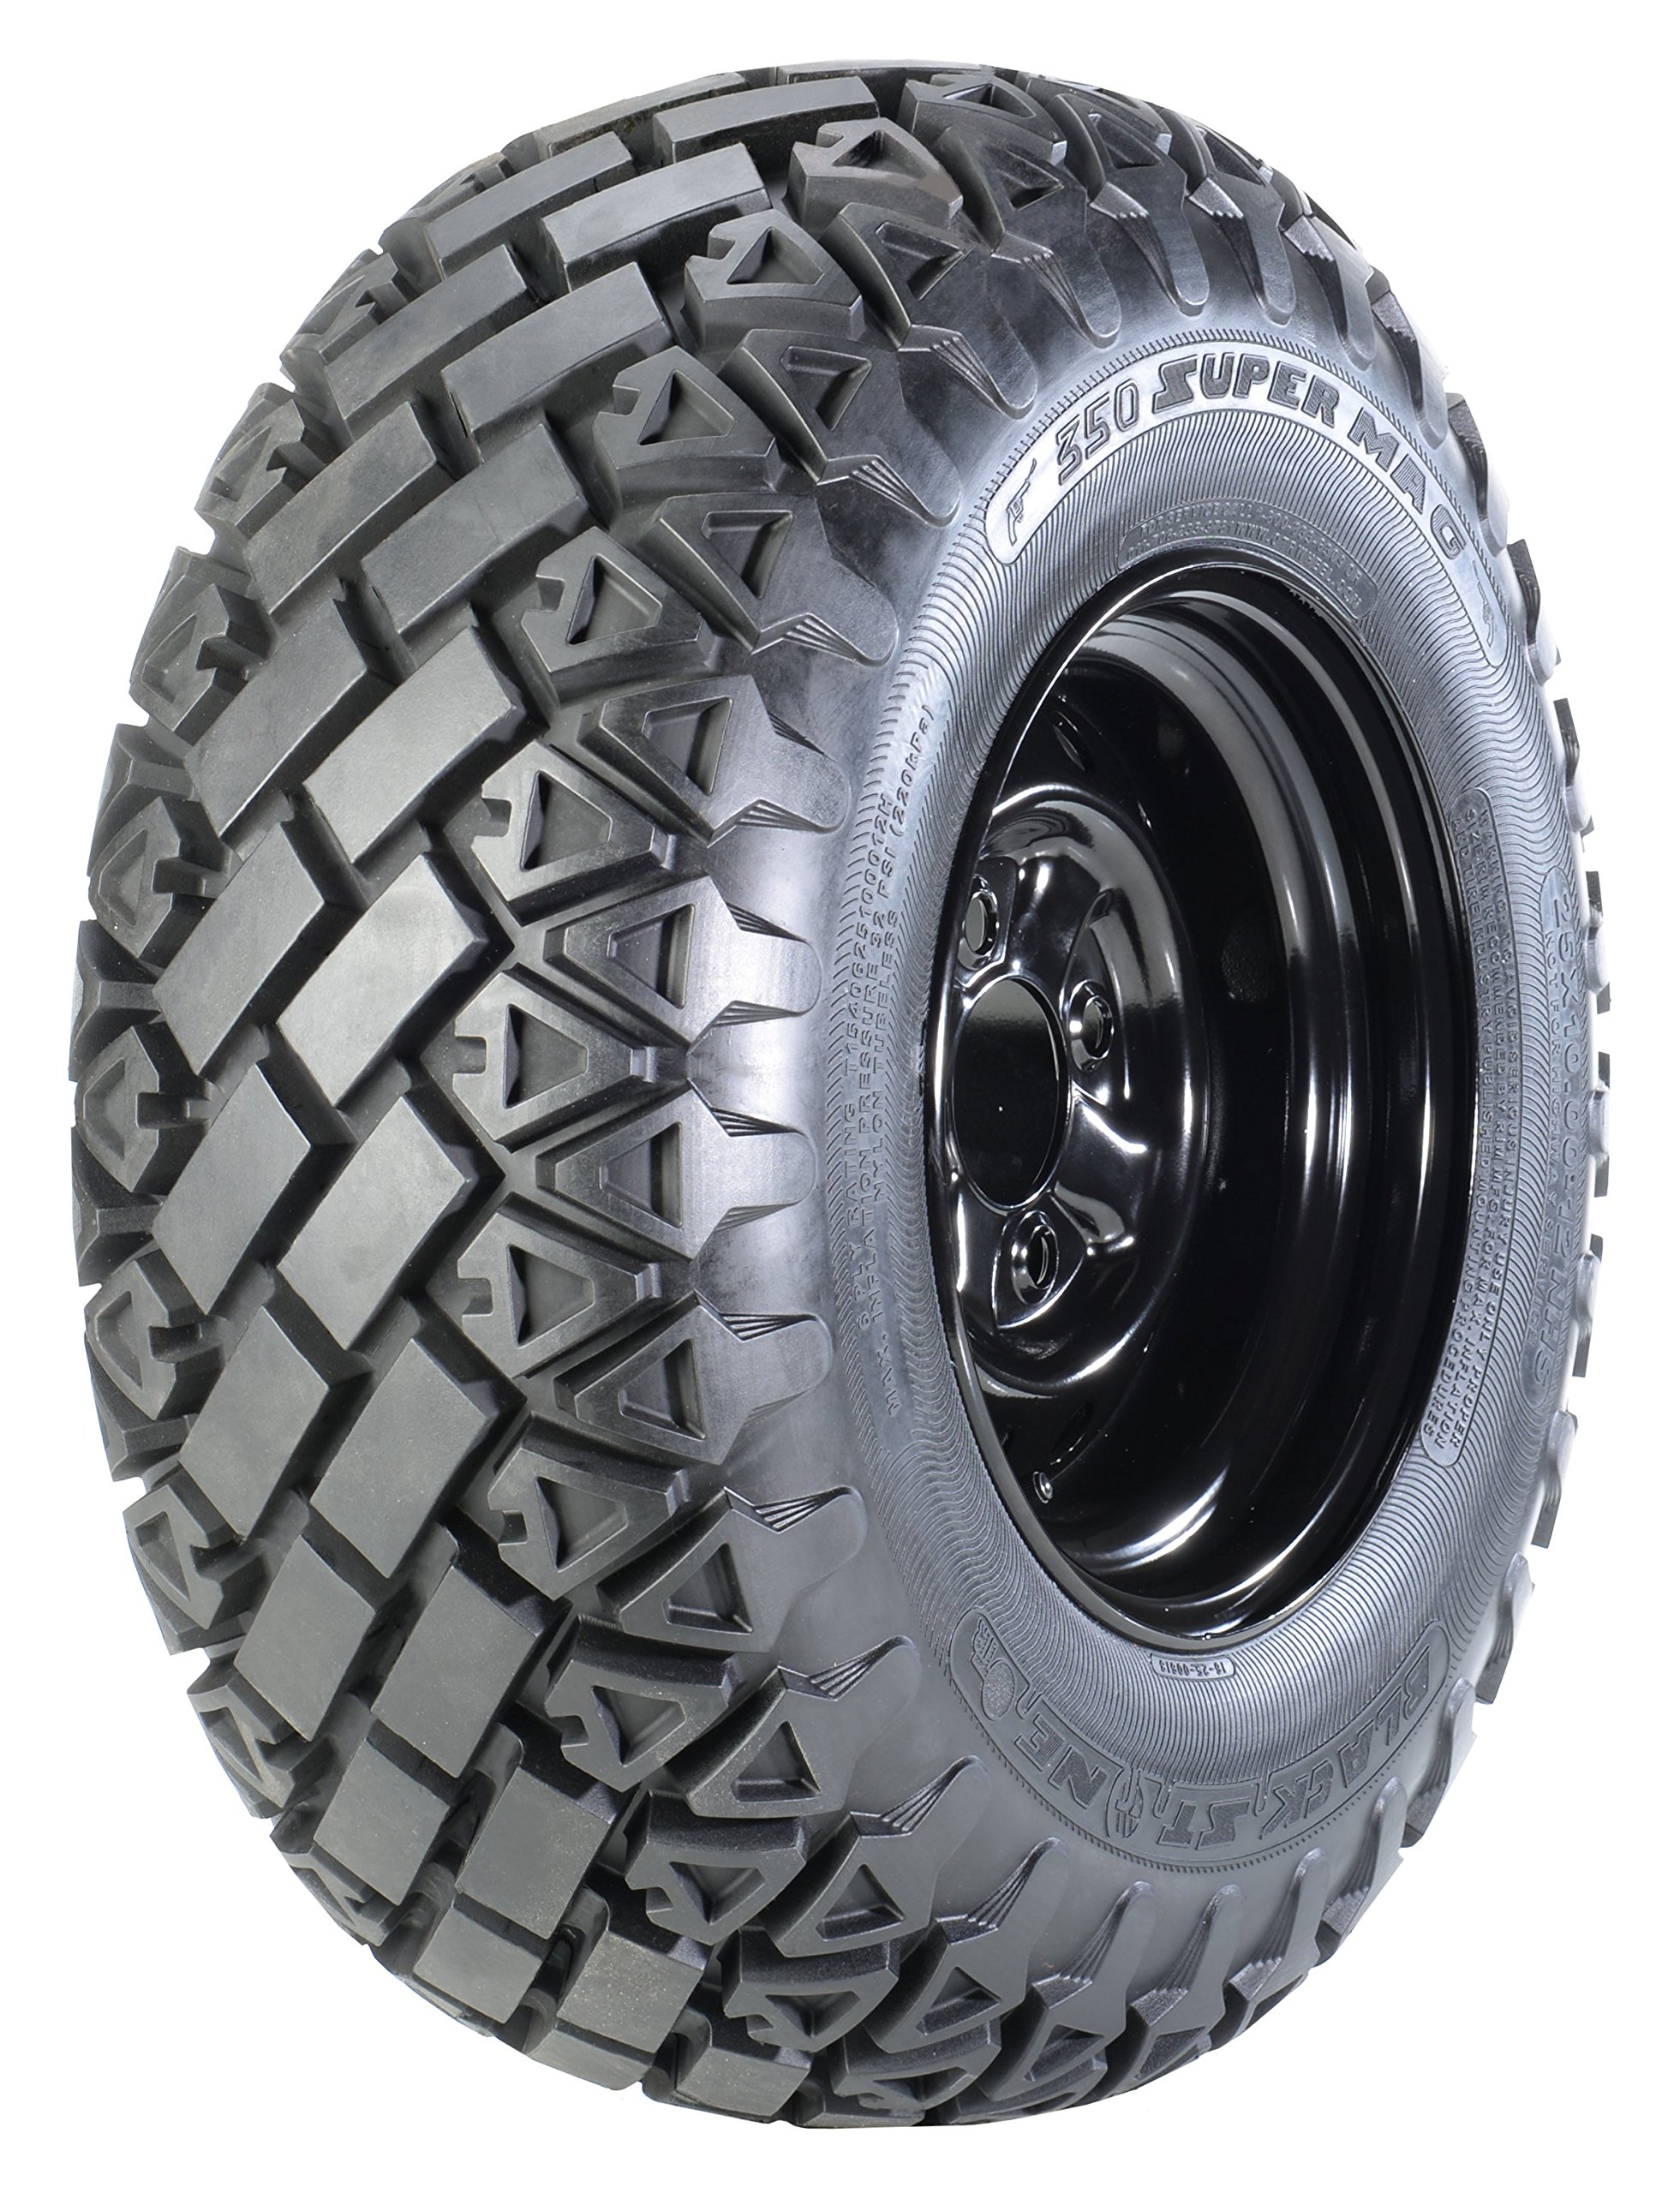 OTR 350 Super Mag 25 x 10.00-12 TIRE ONLY by OTR Wheel Engineeing, Inc